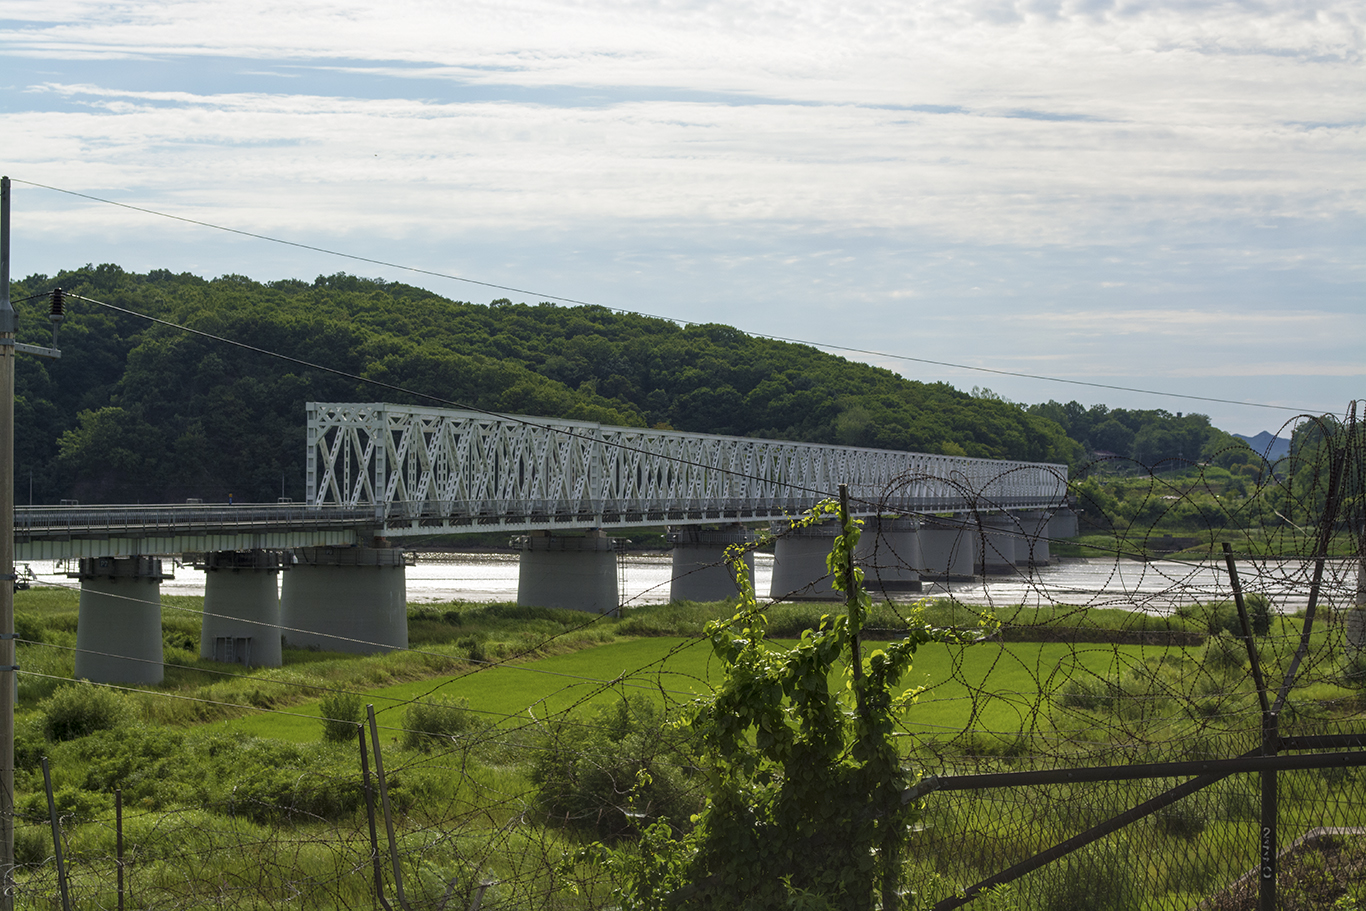 The Freedom Bridge as seen from Imjingak on the South Korean side of the Military Demarcation Line. The Freedom Bridge was named for its part in repatriating POWs during the Korean War. (CHRISTOPHER CAMERON/THE STATESMAN)